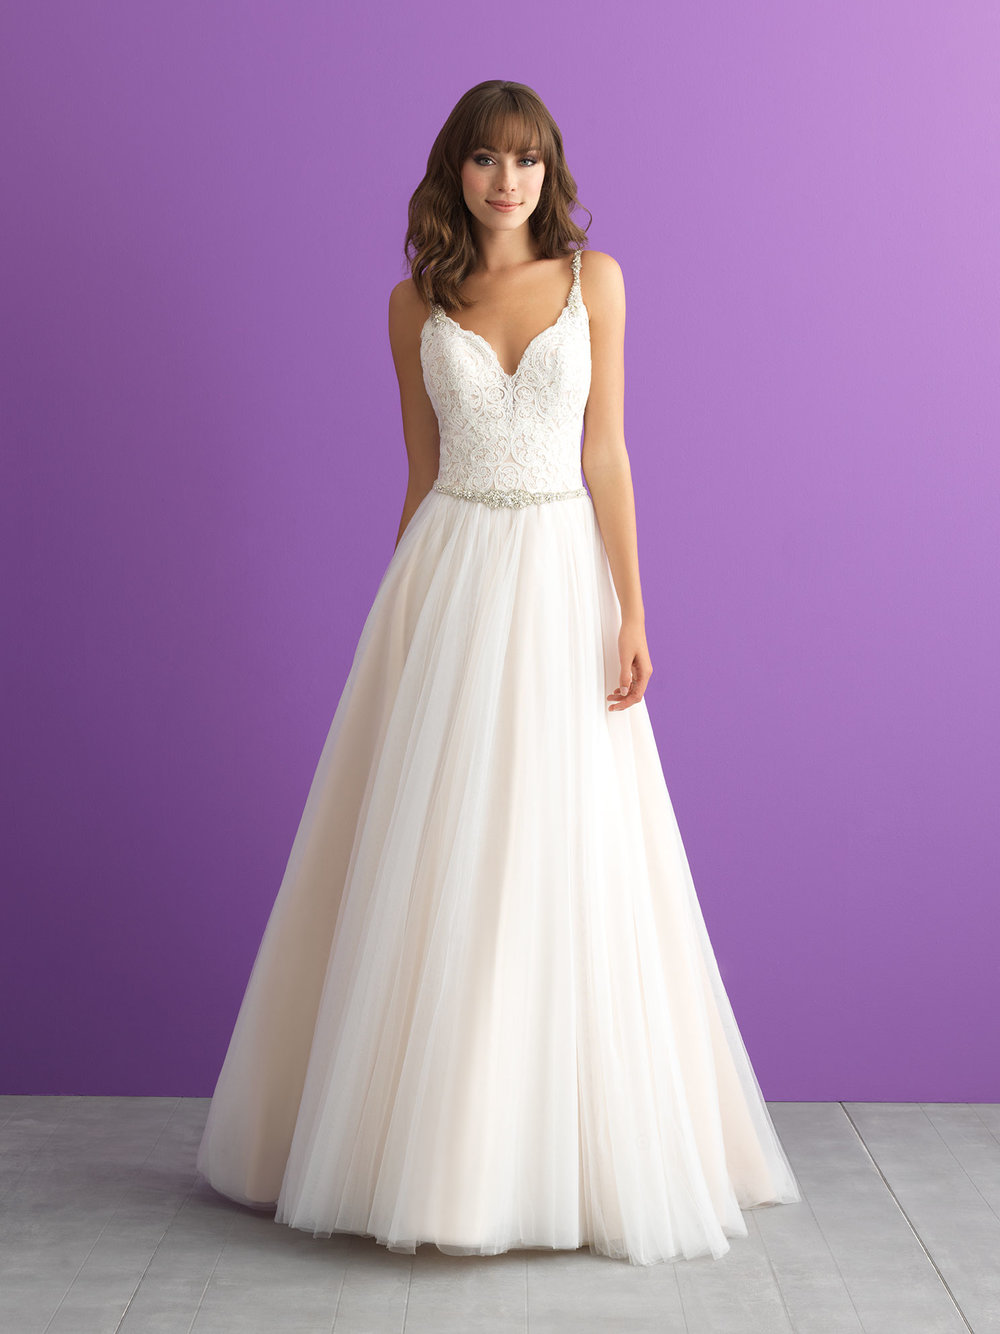 Style 3004 - Sometimes the simplest gowns have the prettiest details - like beaded straps, a scooped back and layers of tulle.